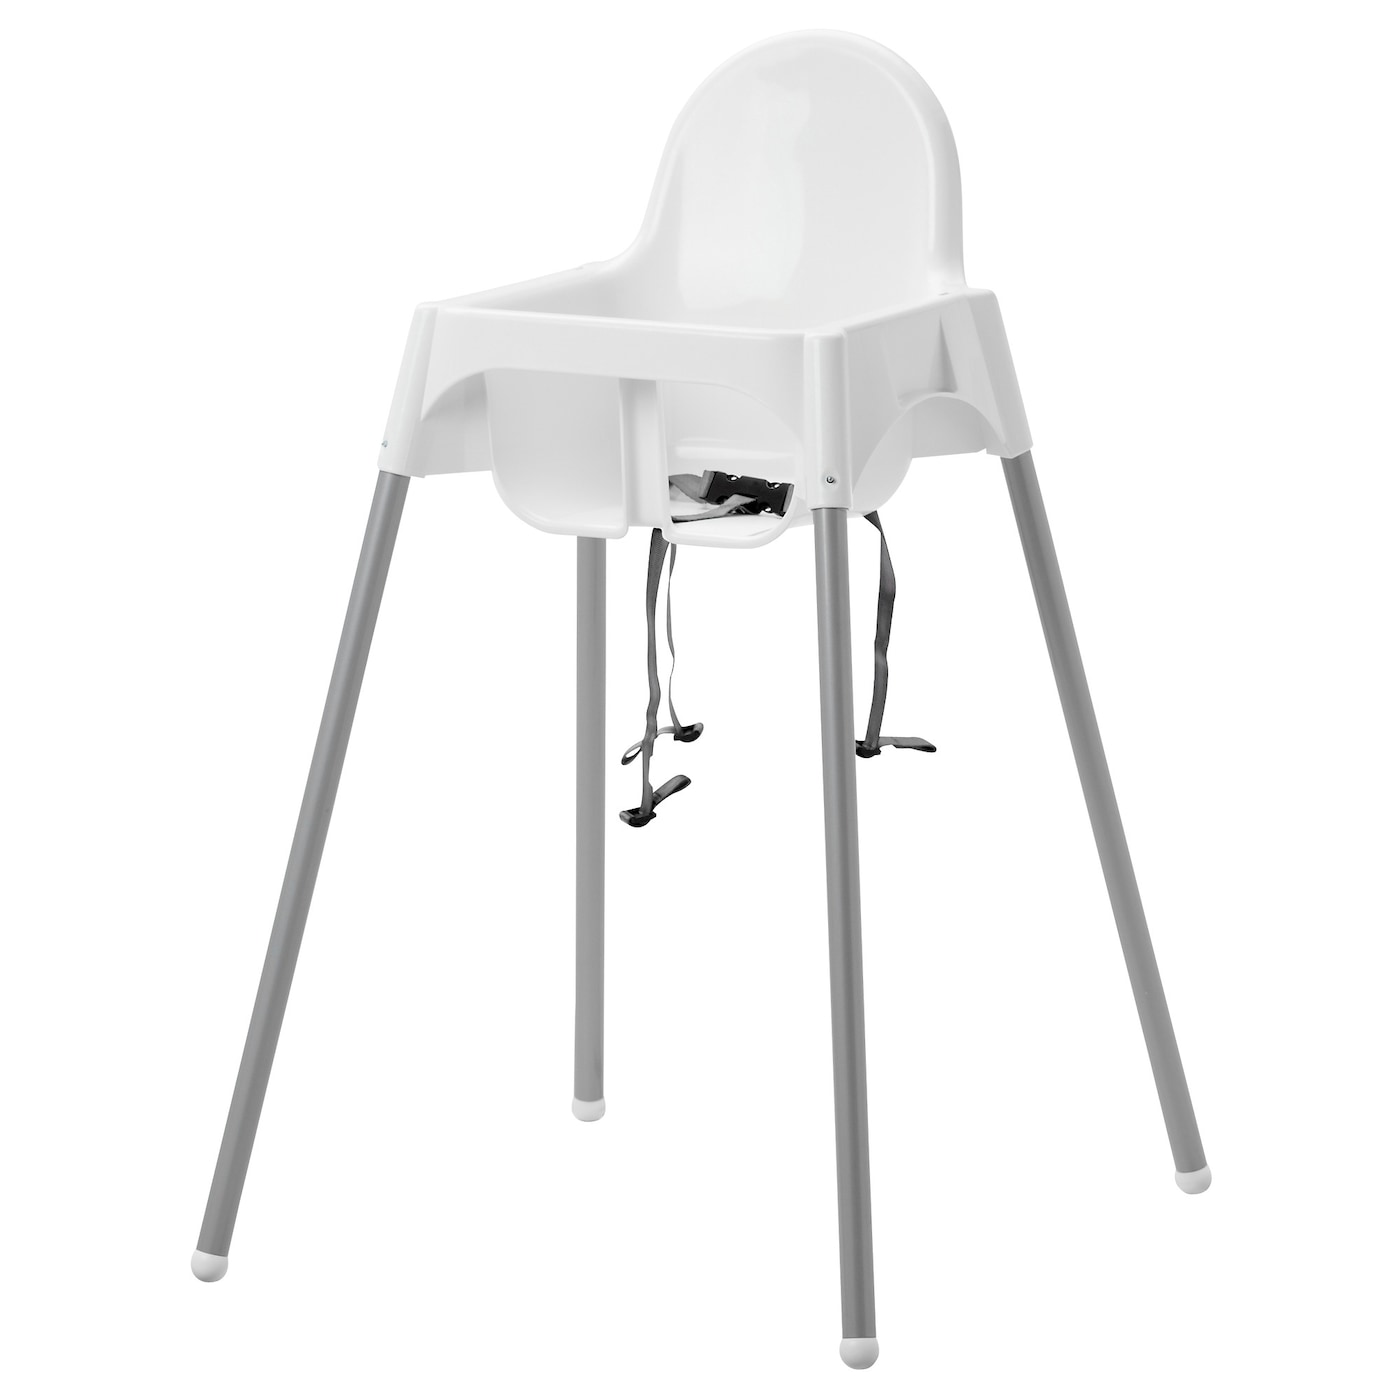 IKEA ANTILOP highchair with safety belt Easy to disassemble and carry along.